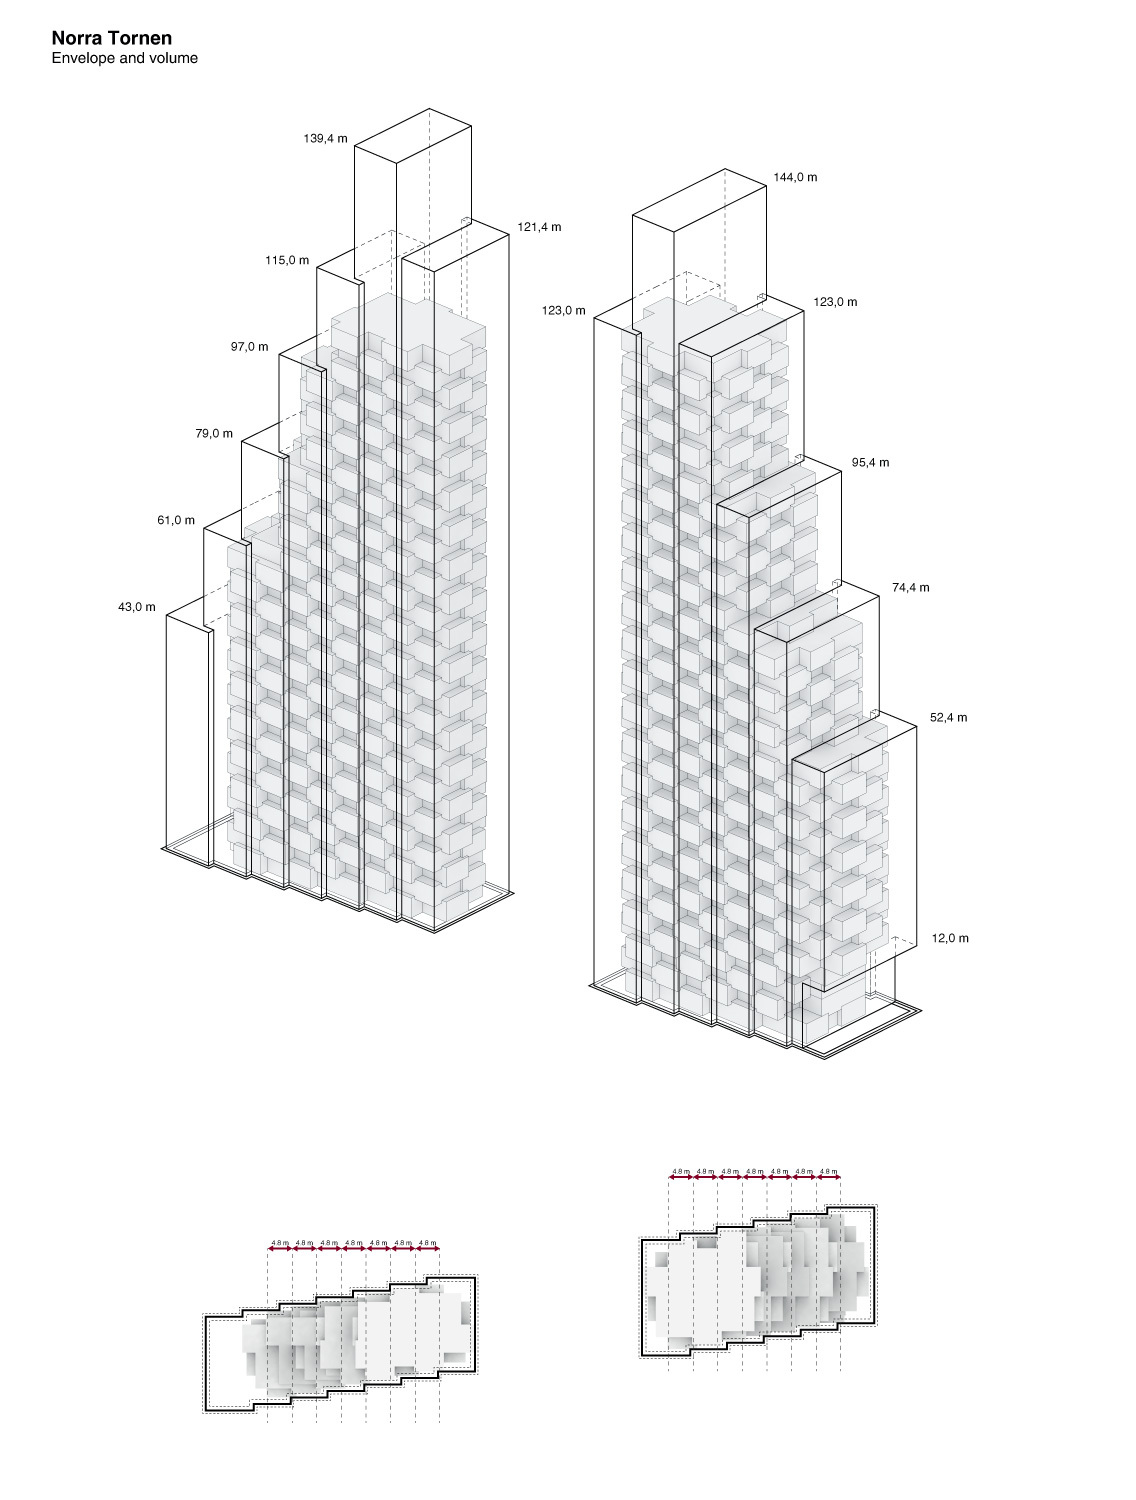 new details on oma u0026 39 s norra tornen twin towers in stockholm